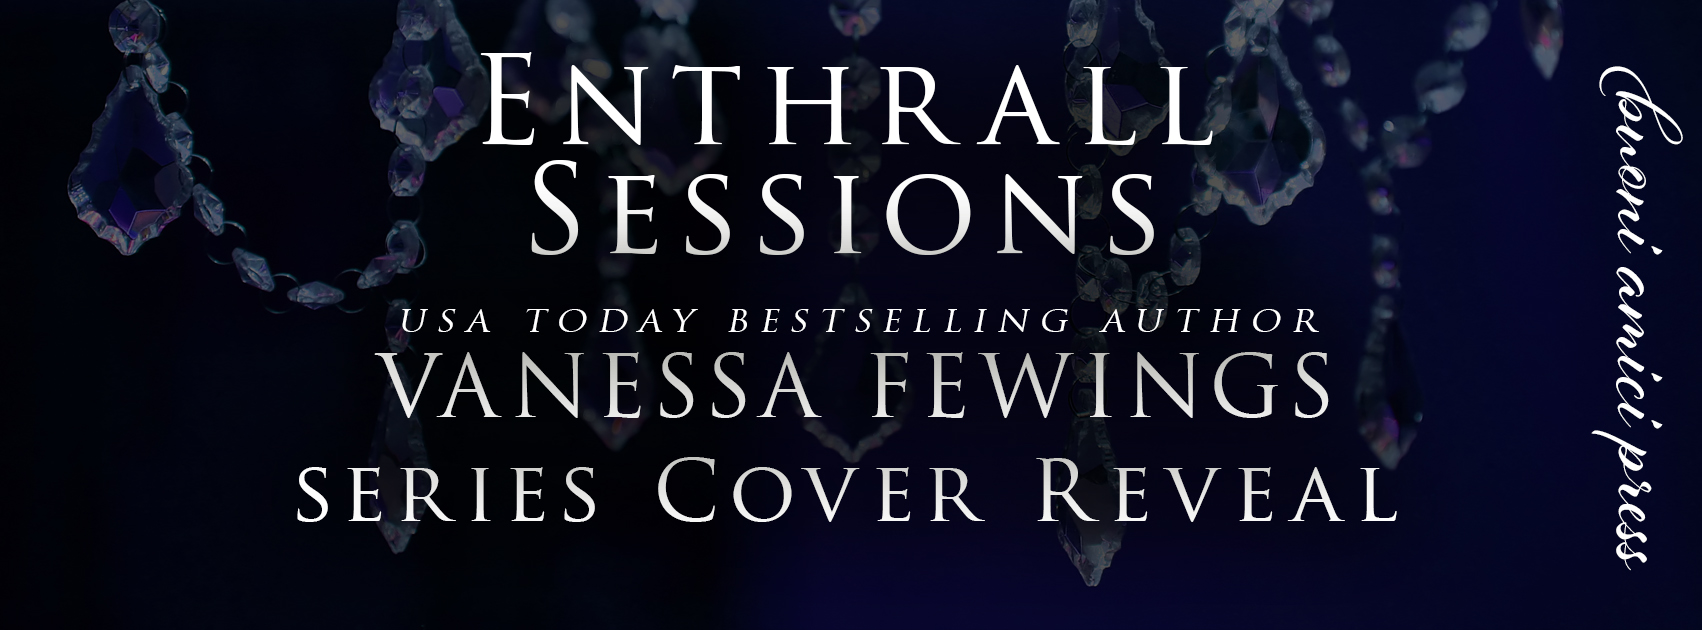 Enthrall  Sessions By Vanessa Fewings